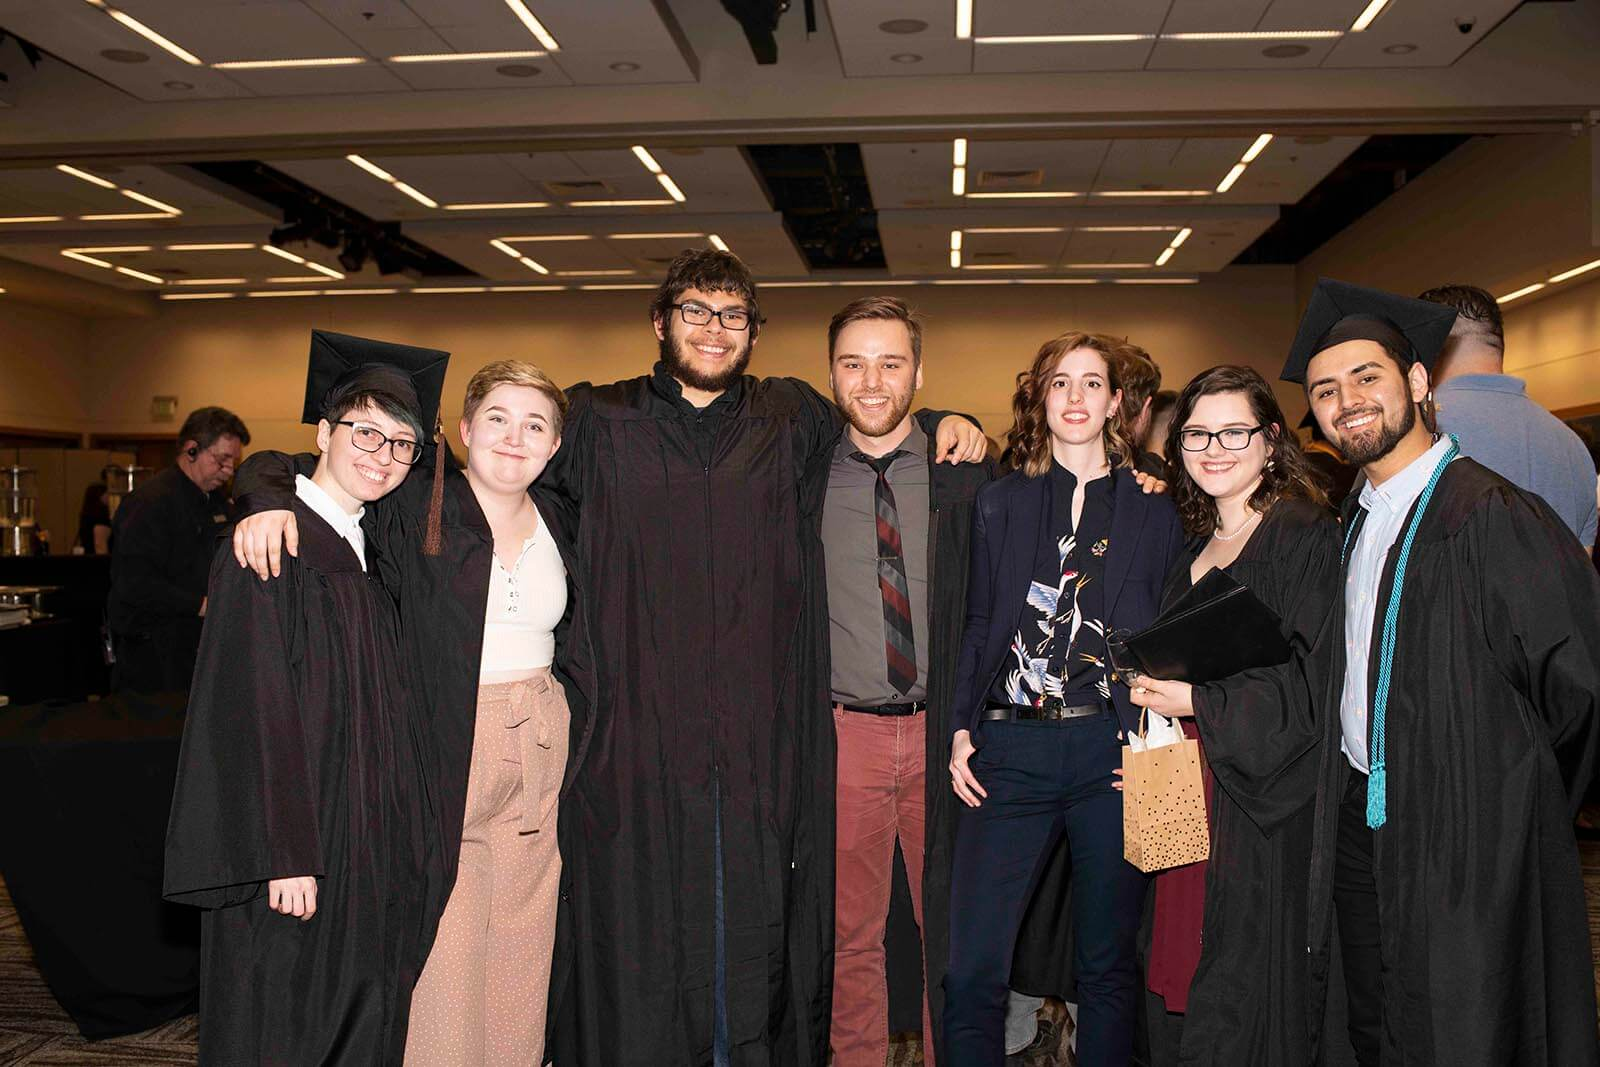 Newly graduated students in black robes pose together in a convention center meeting room.